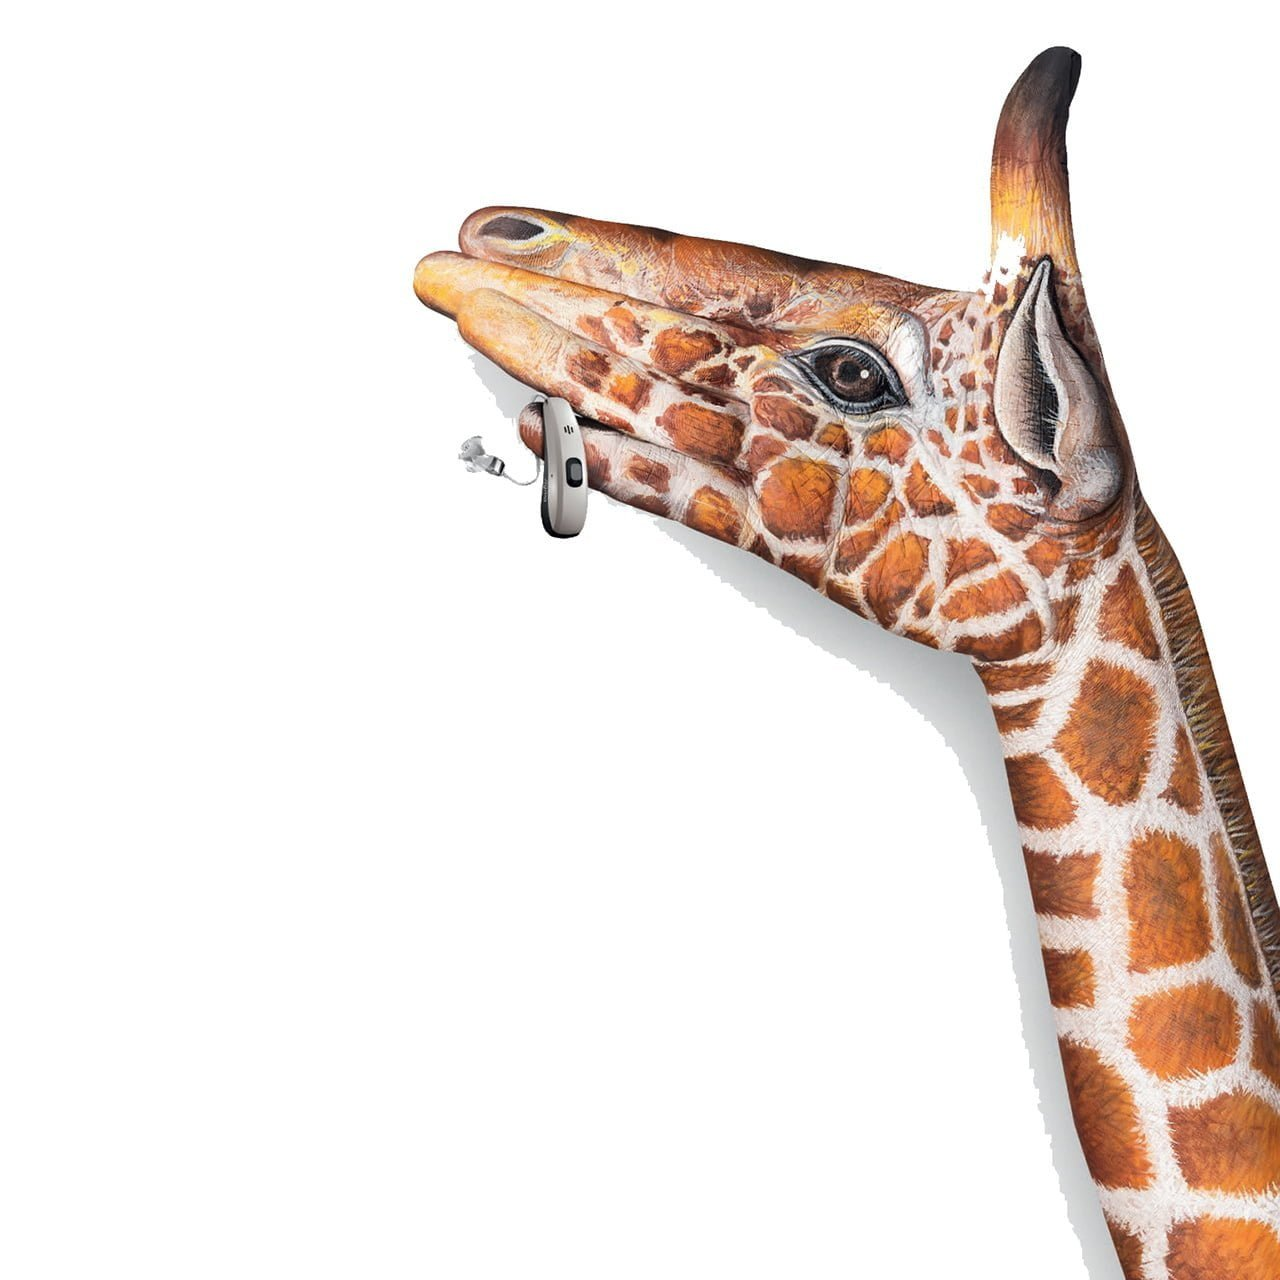 A close up of a giraffe